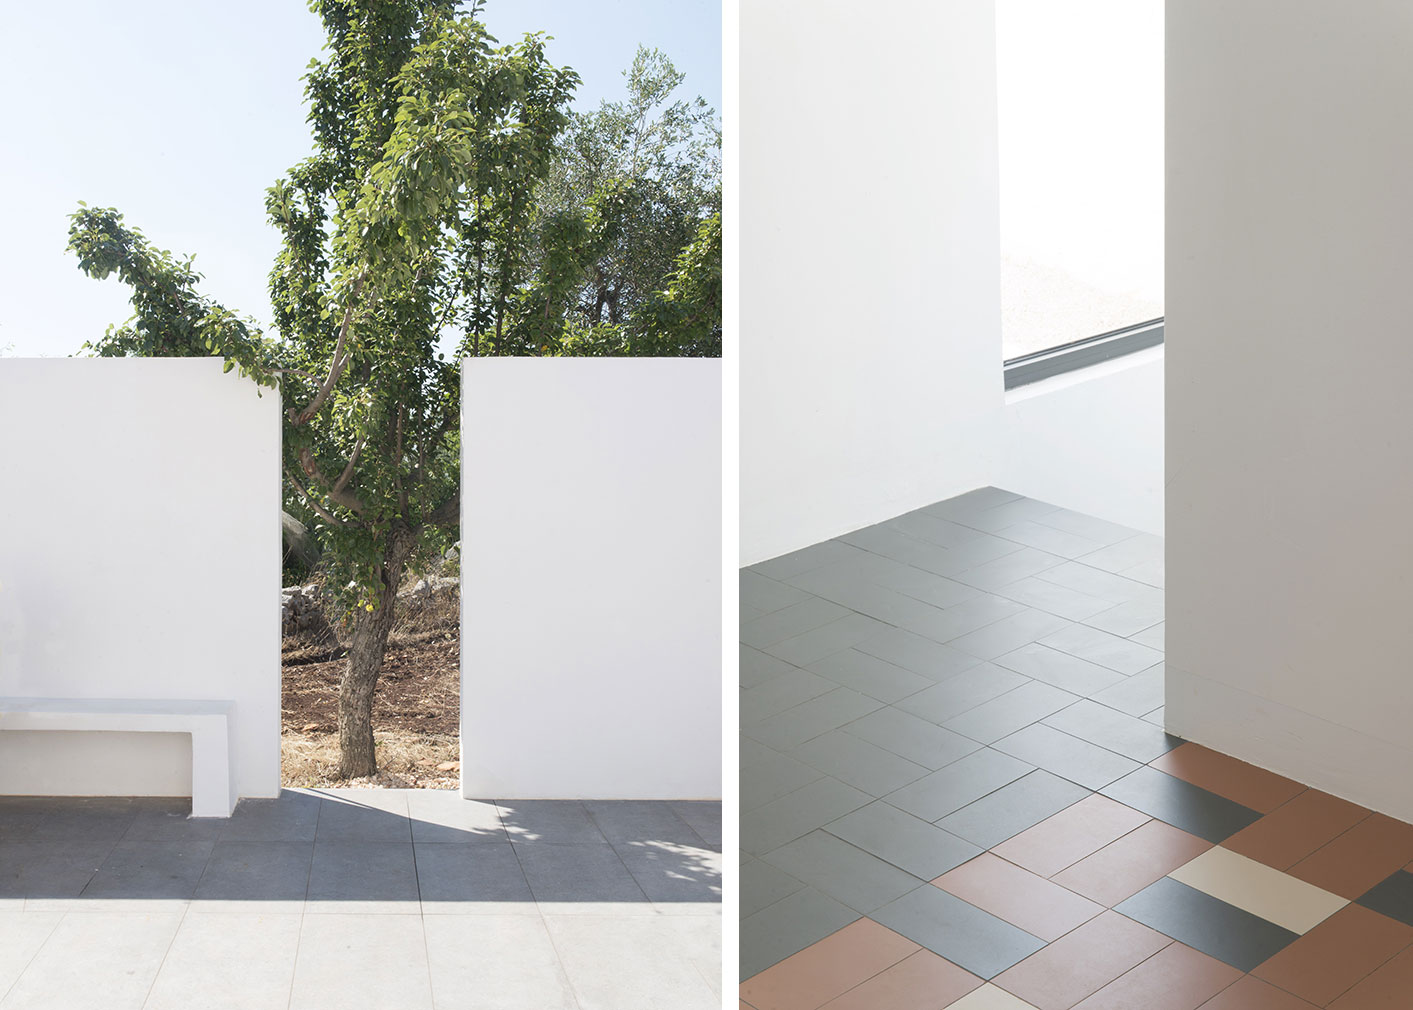 The house is blanketed by white-washed walls, with openings that frame the landscape and surrounding olive trees